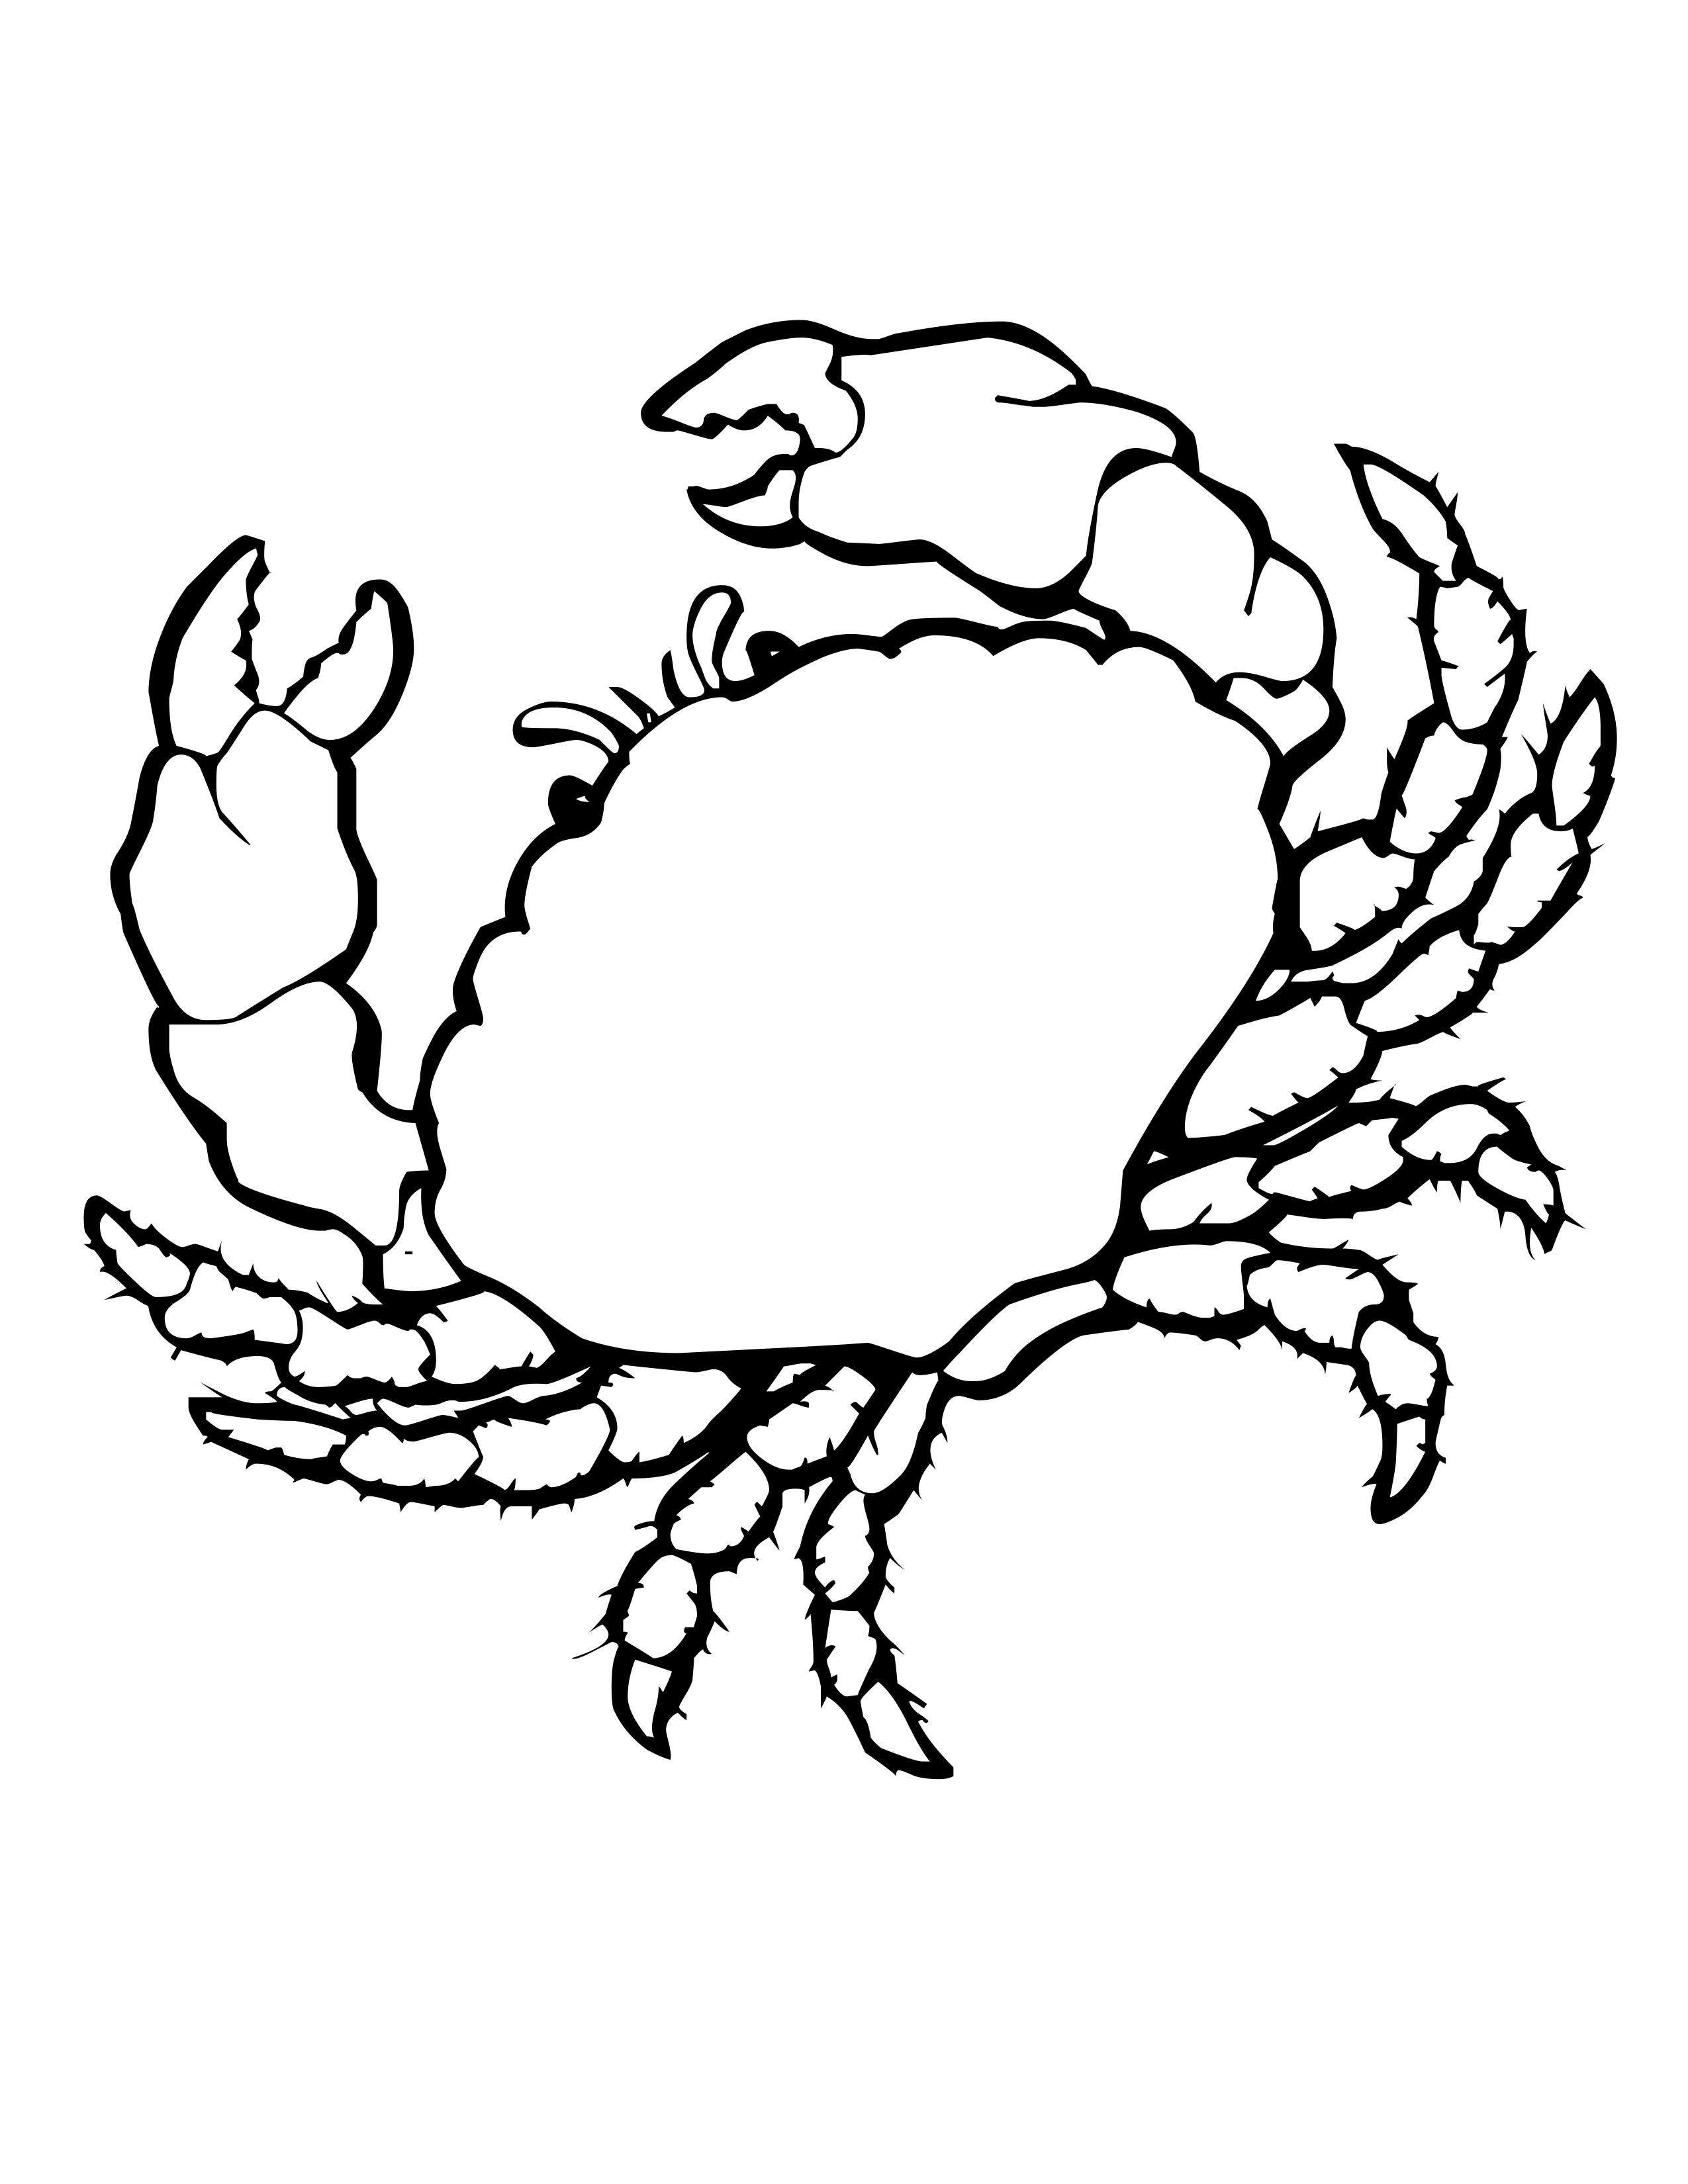 Seashell Coloring Page At Getdrawings Com Free For Personal Use